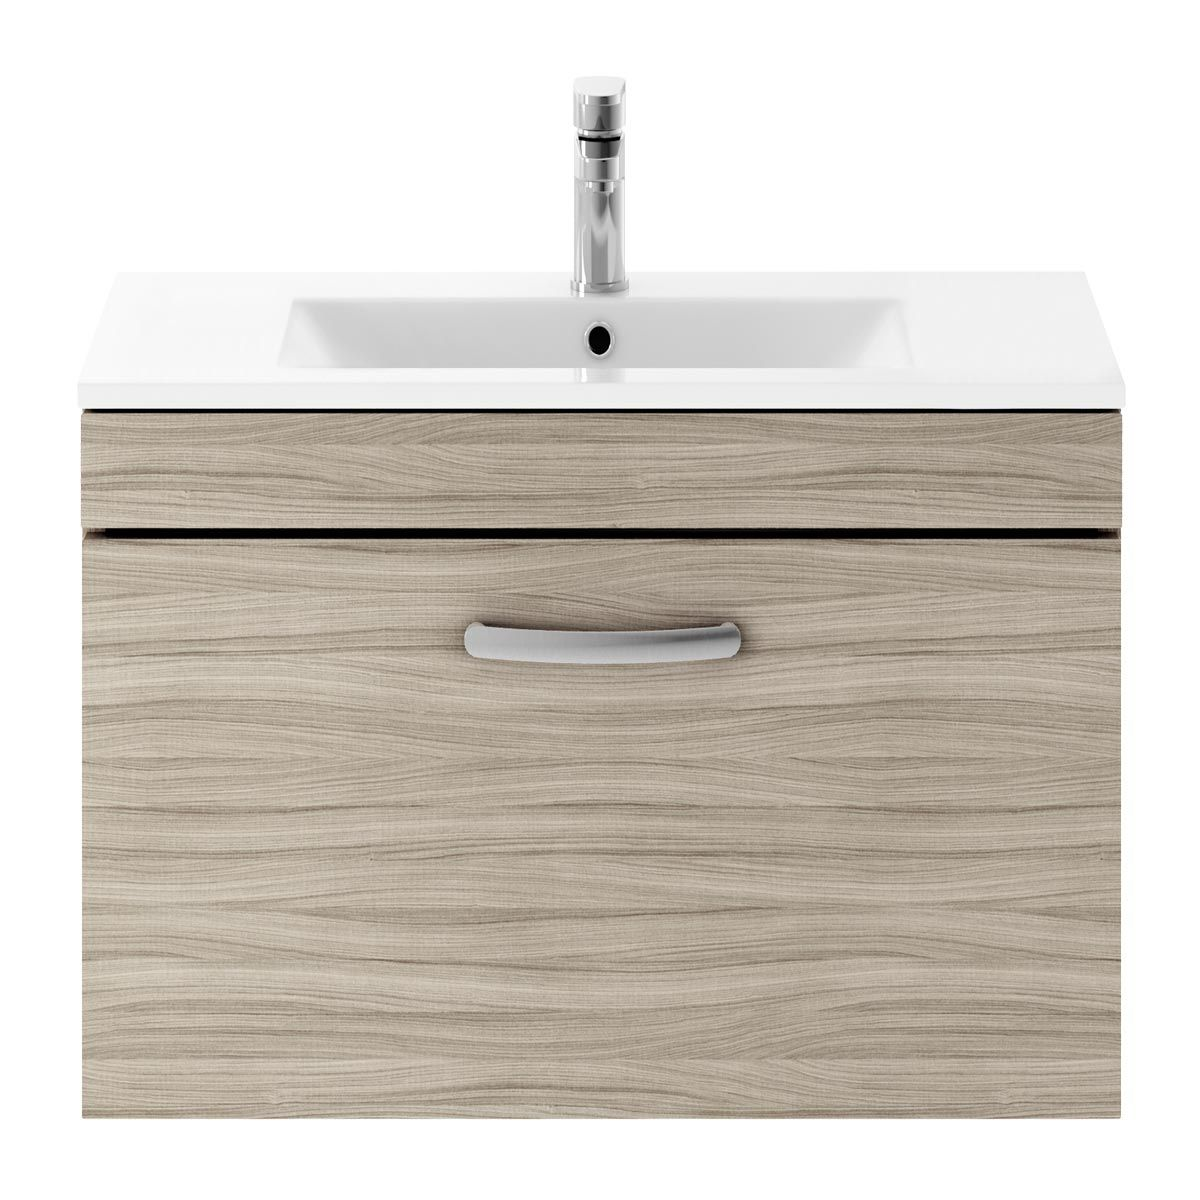 Nuie Athena Driftwood 1 Drawer Wall Hung Vanity Unit with 18mm Profile Basin 800mm